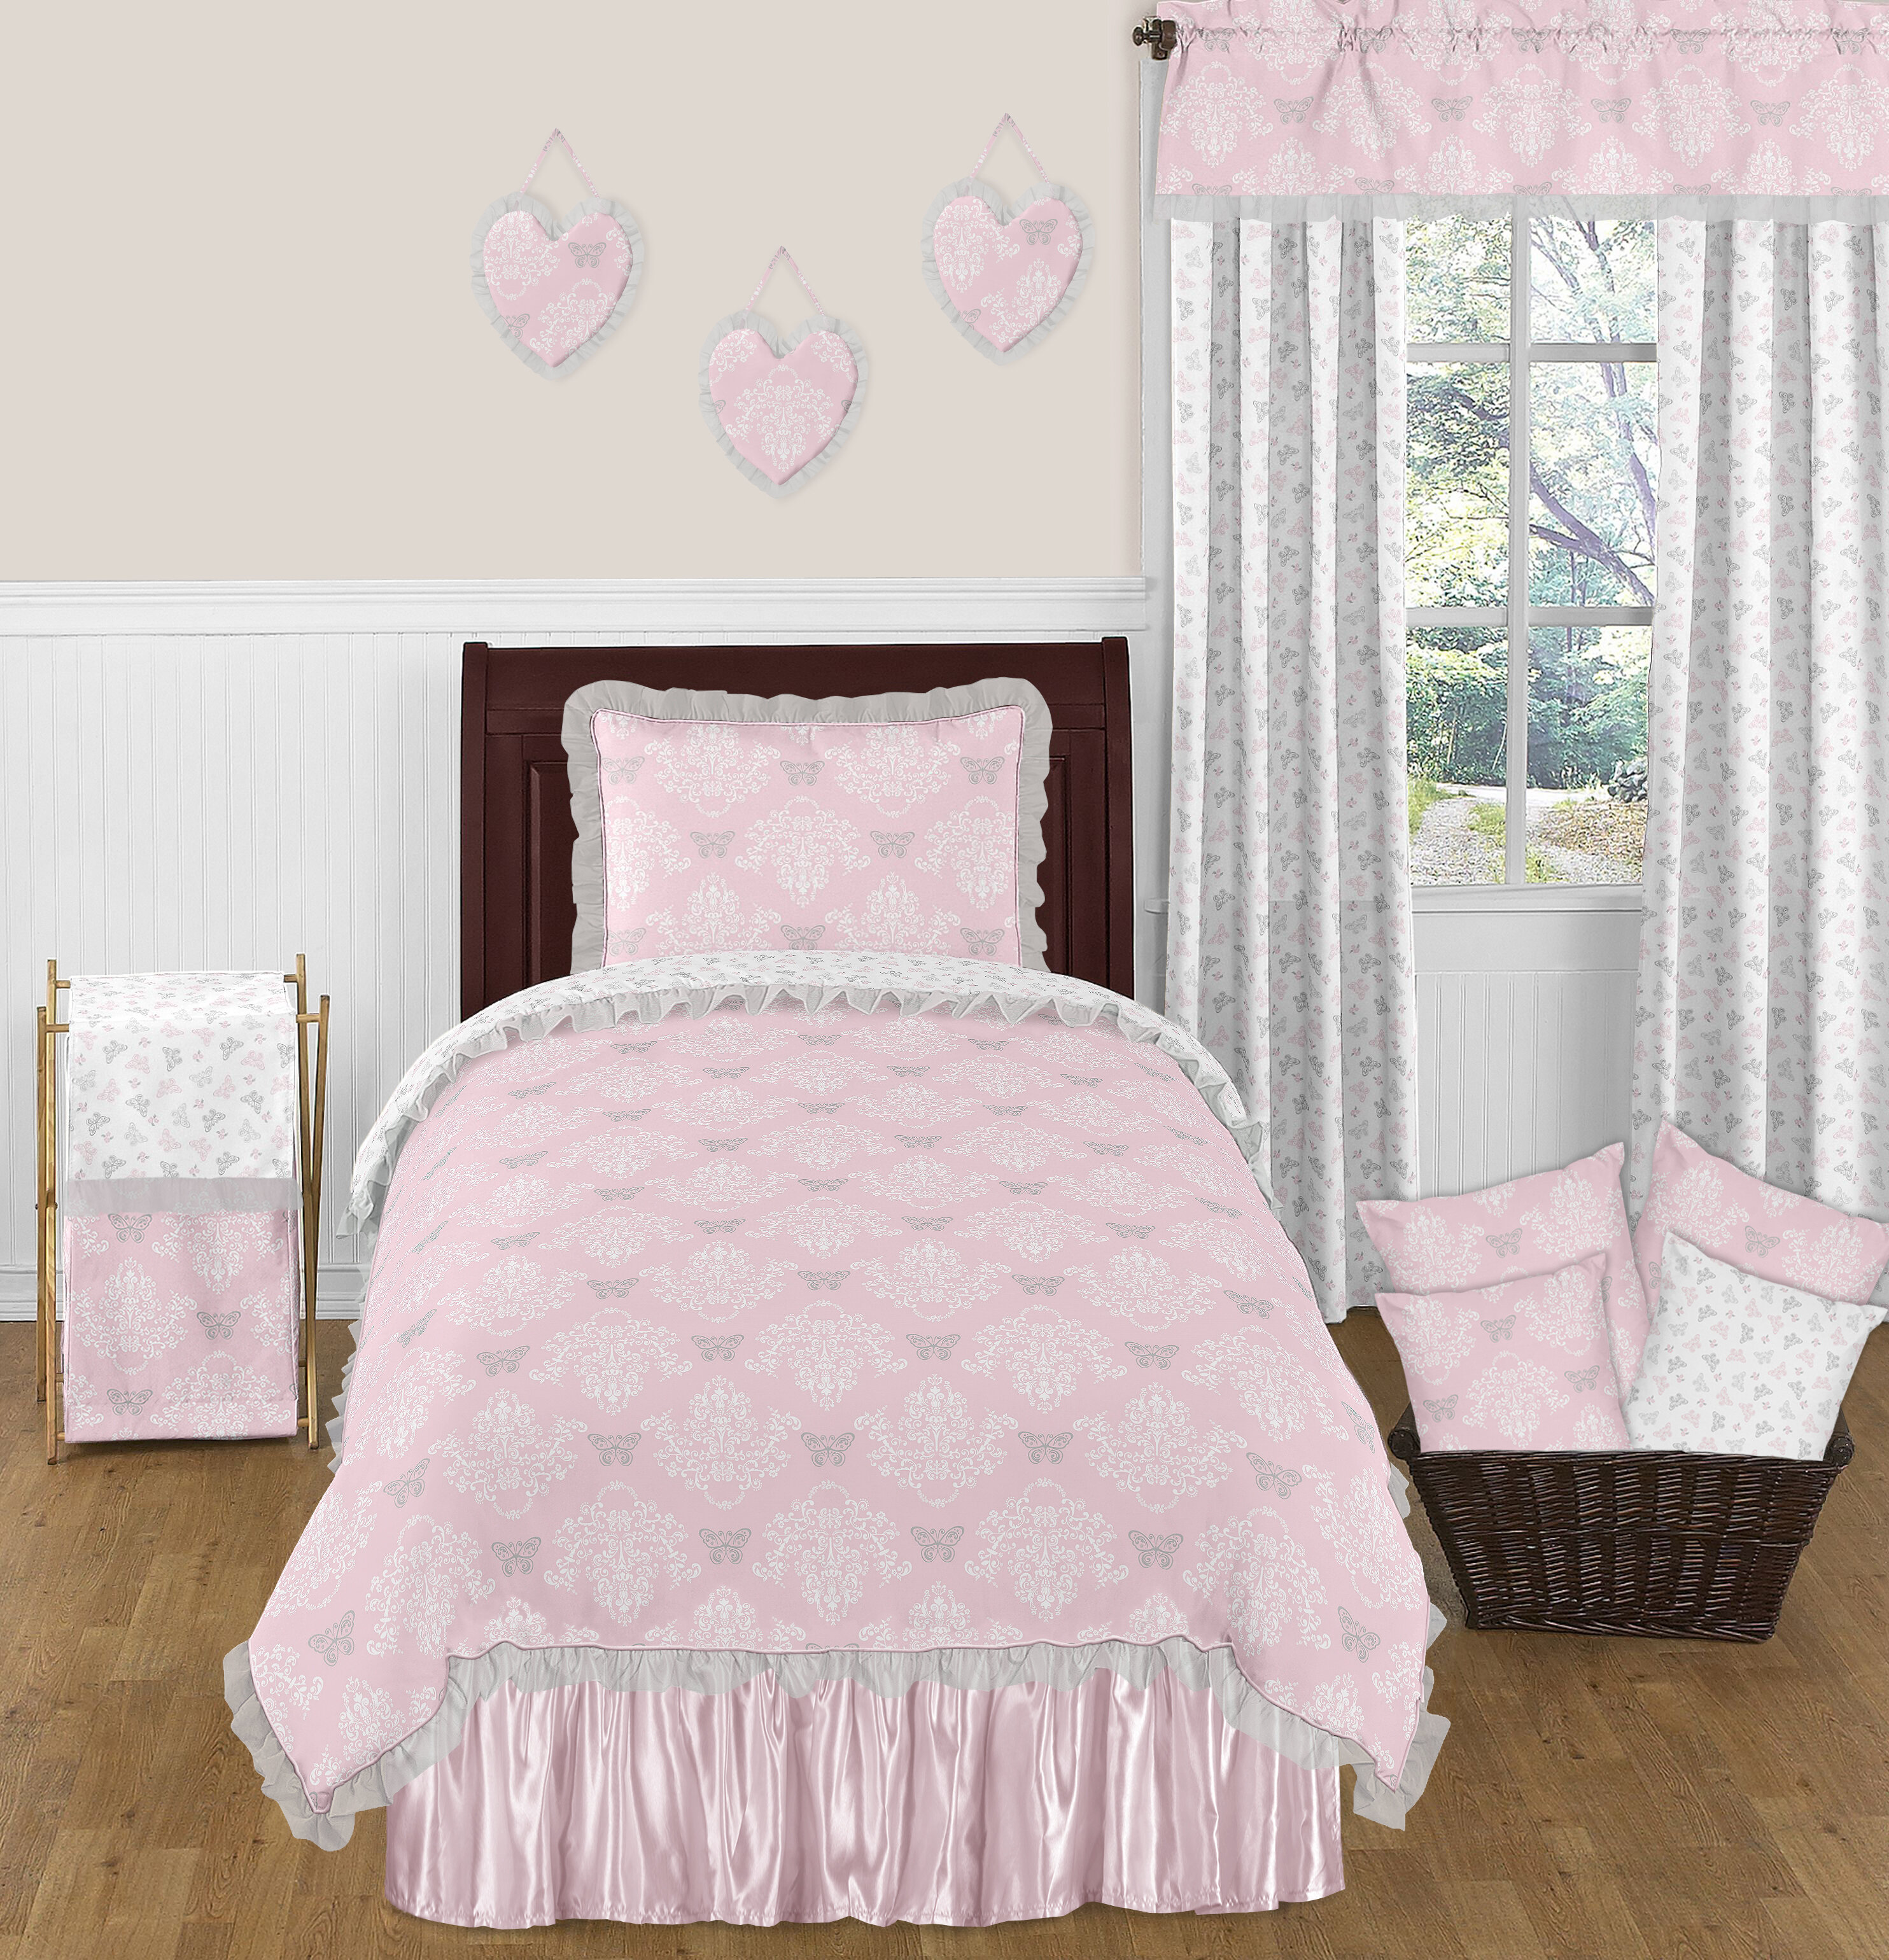 sets bedding decoration set blue of home queen full size purple king pink grey twin comforter